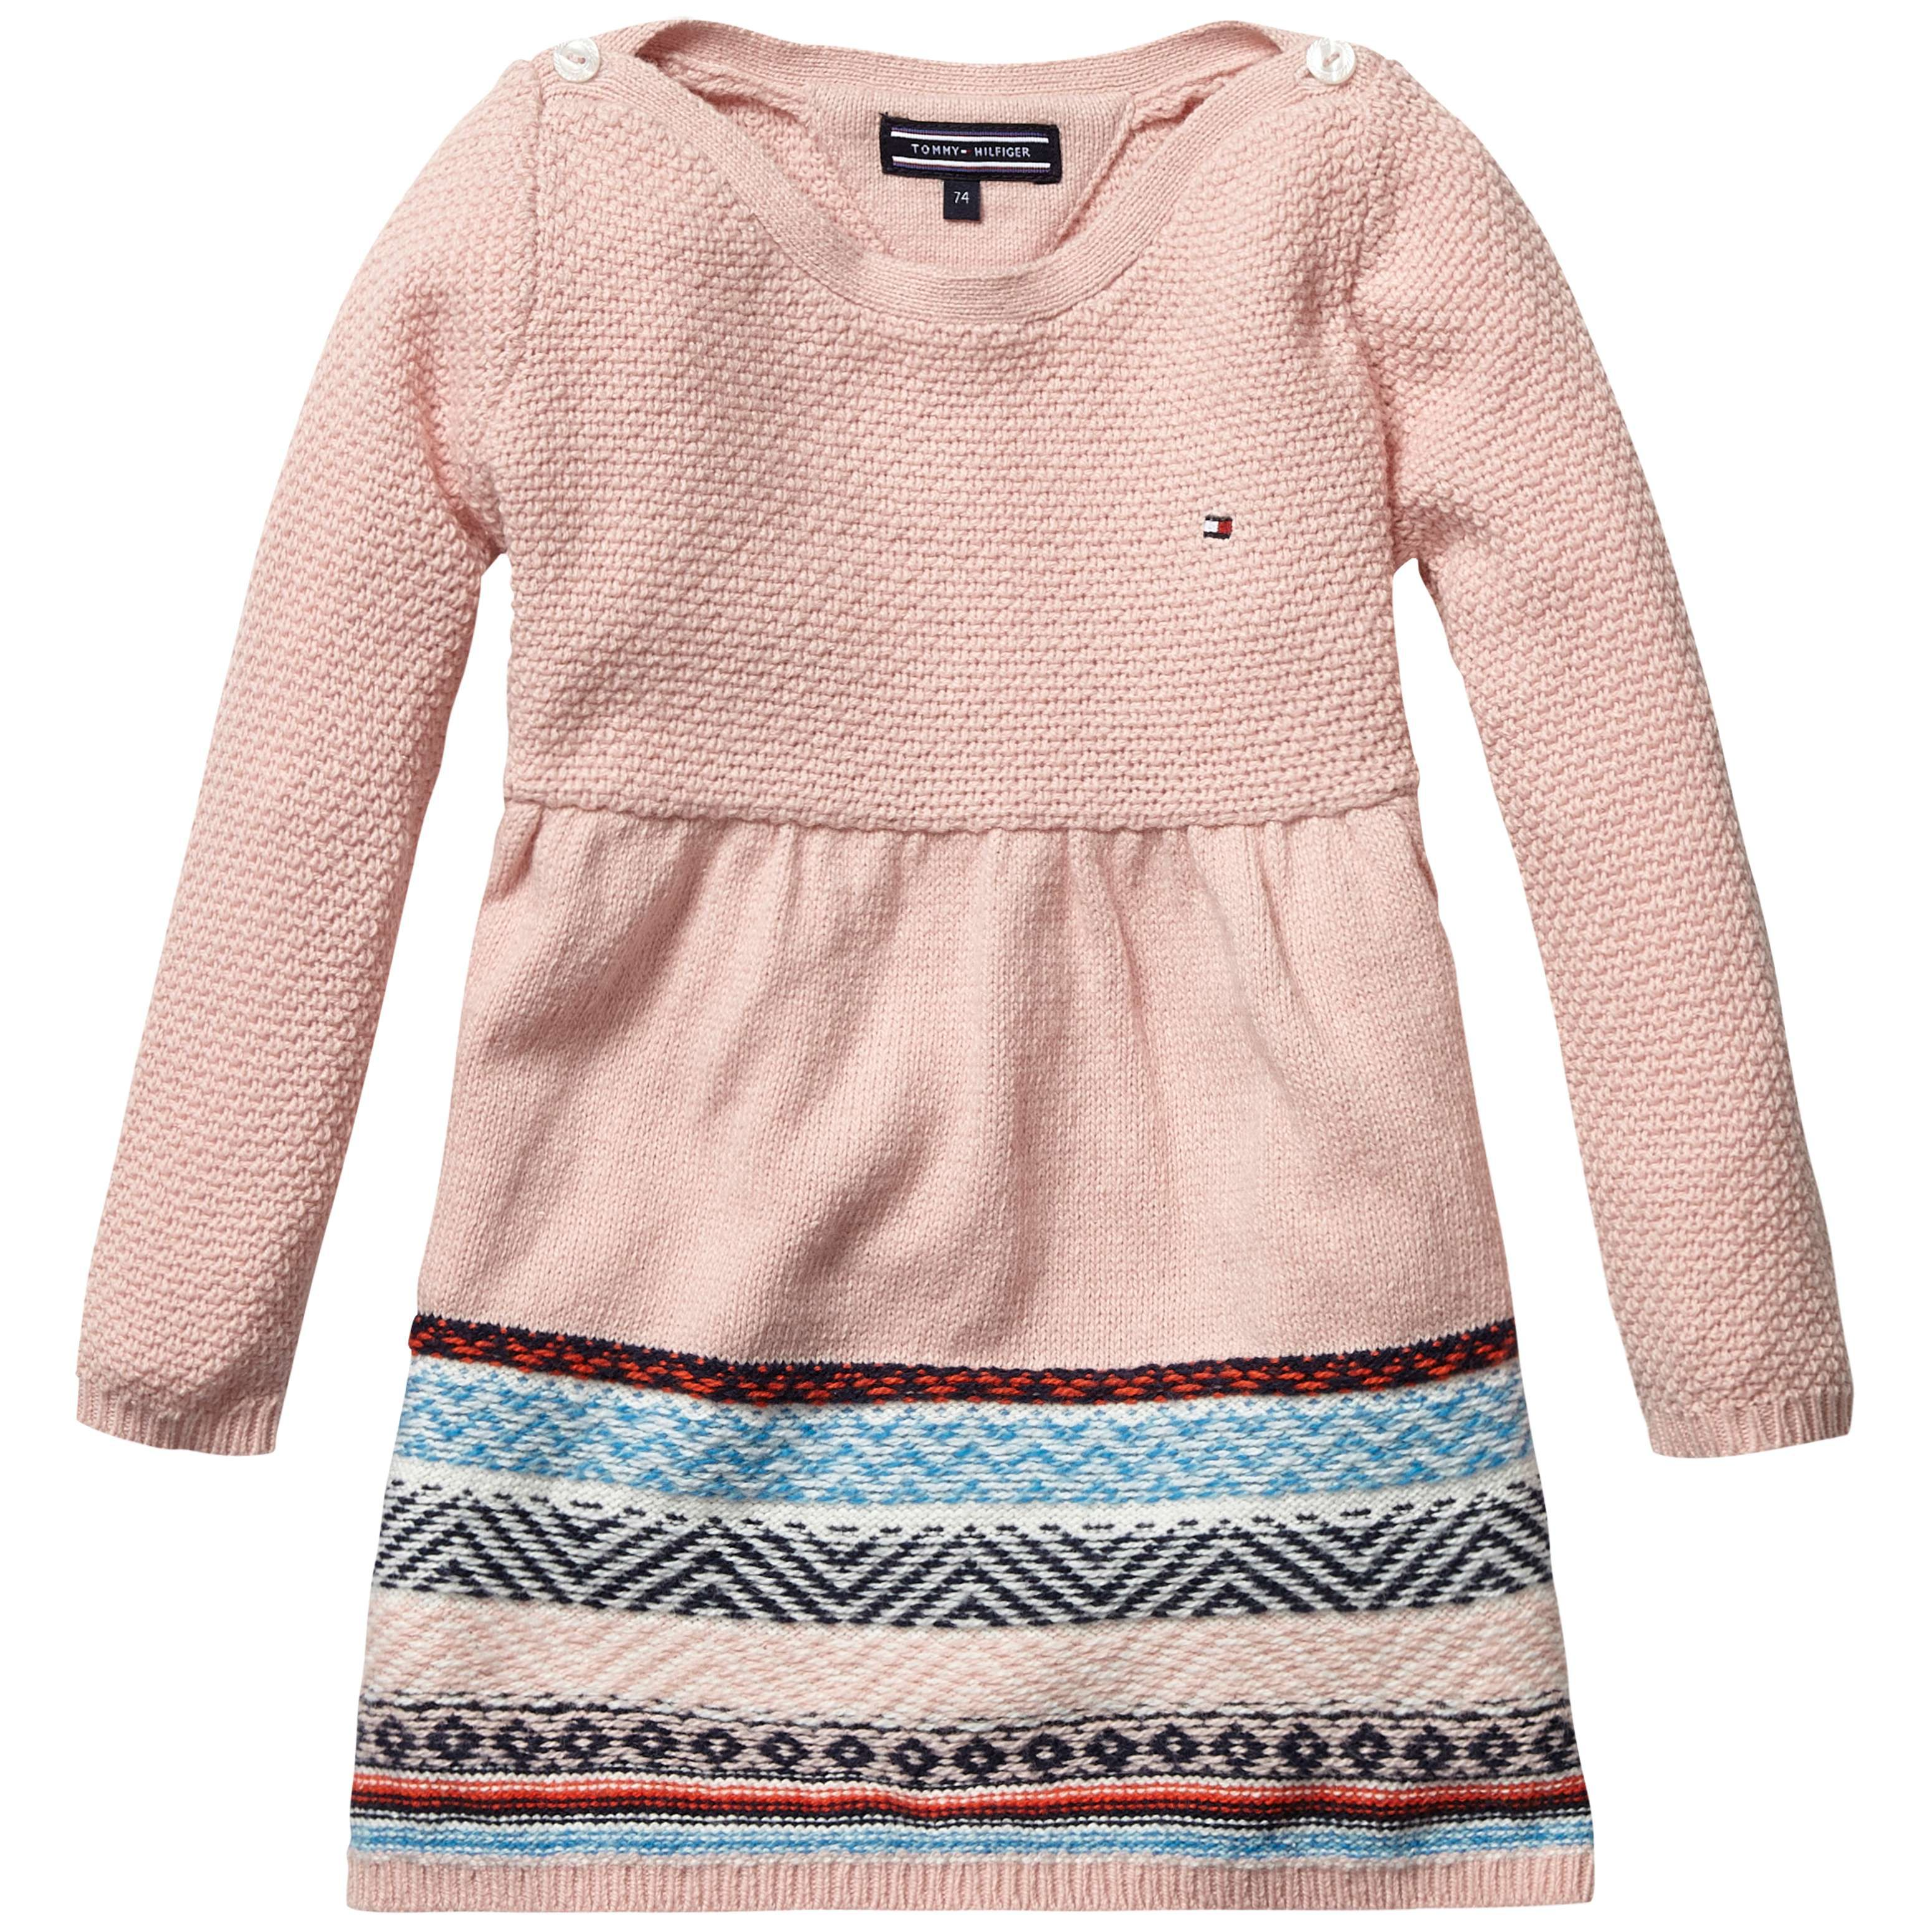 Girls intarsia mini sweater dress